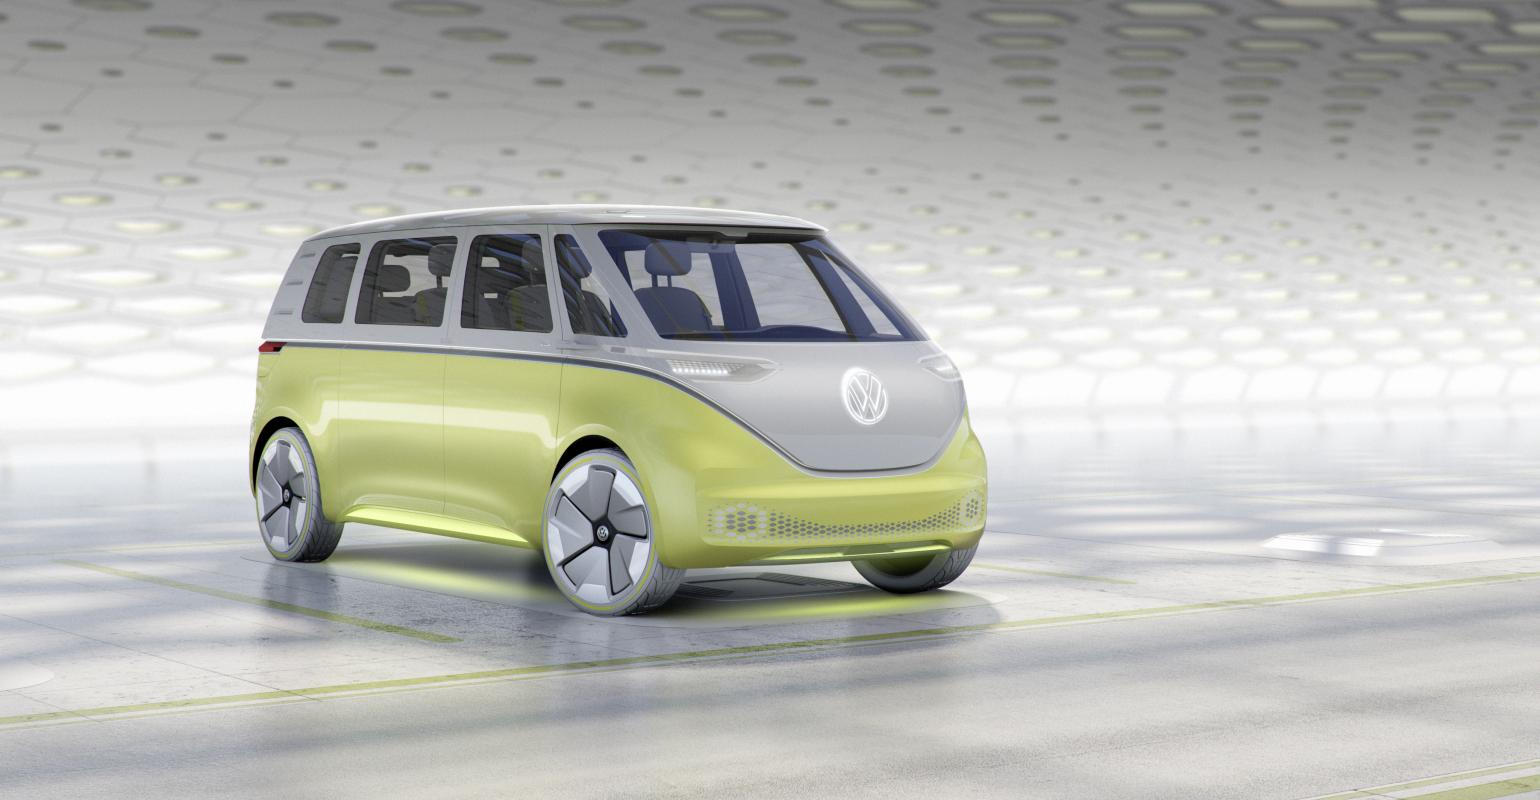 Vw S I D Buzz Packages High Tech Under Retro Skin